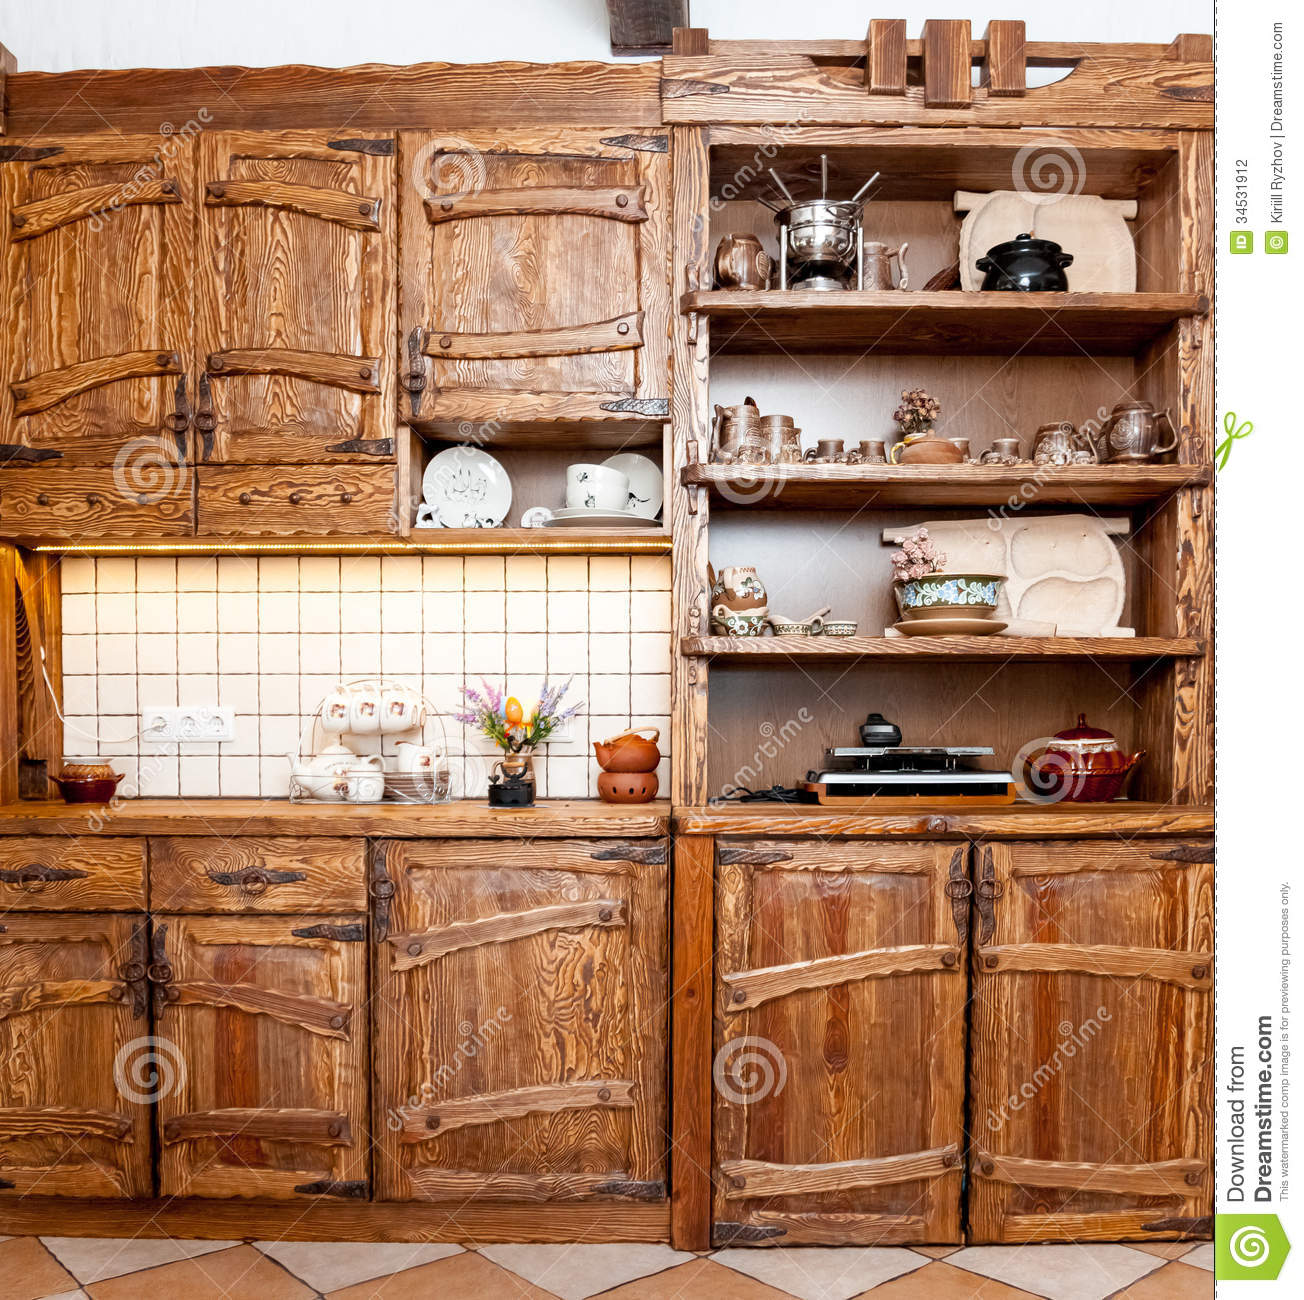 meubles pour la cuisine dans le style campagnard. Black Bedroom Furniture Sets. Home Design Ideas